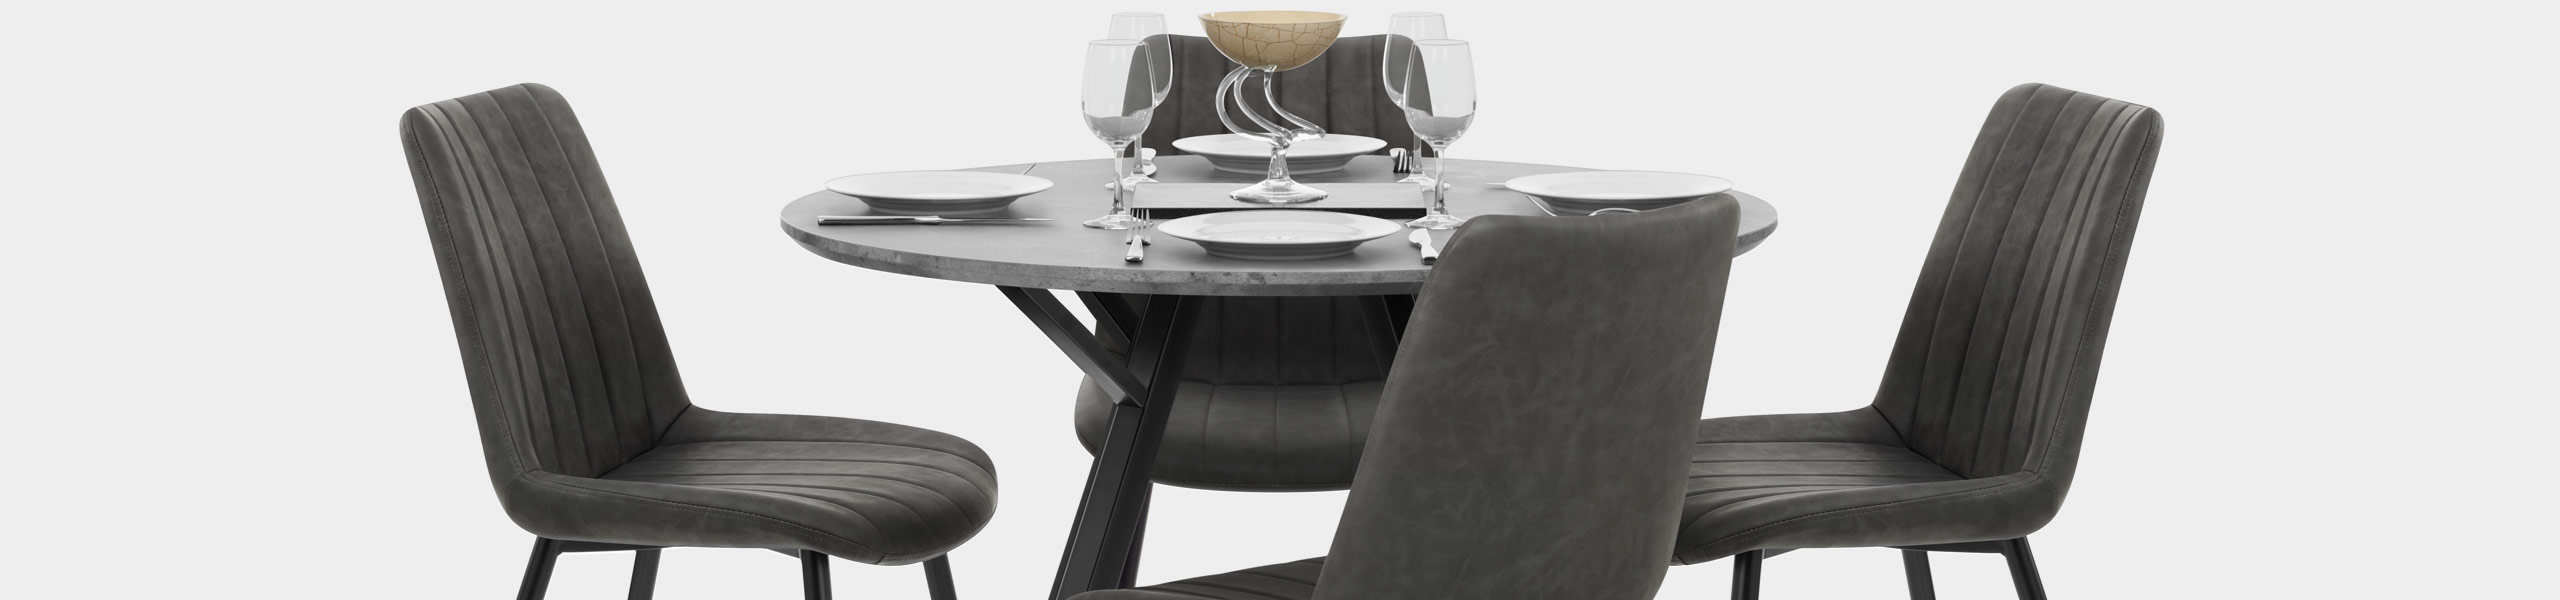 Quest 100cm Dining Table Concrete Video Banner